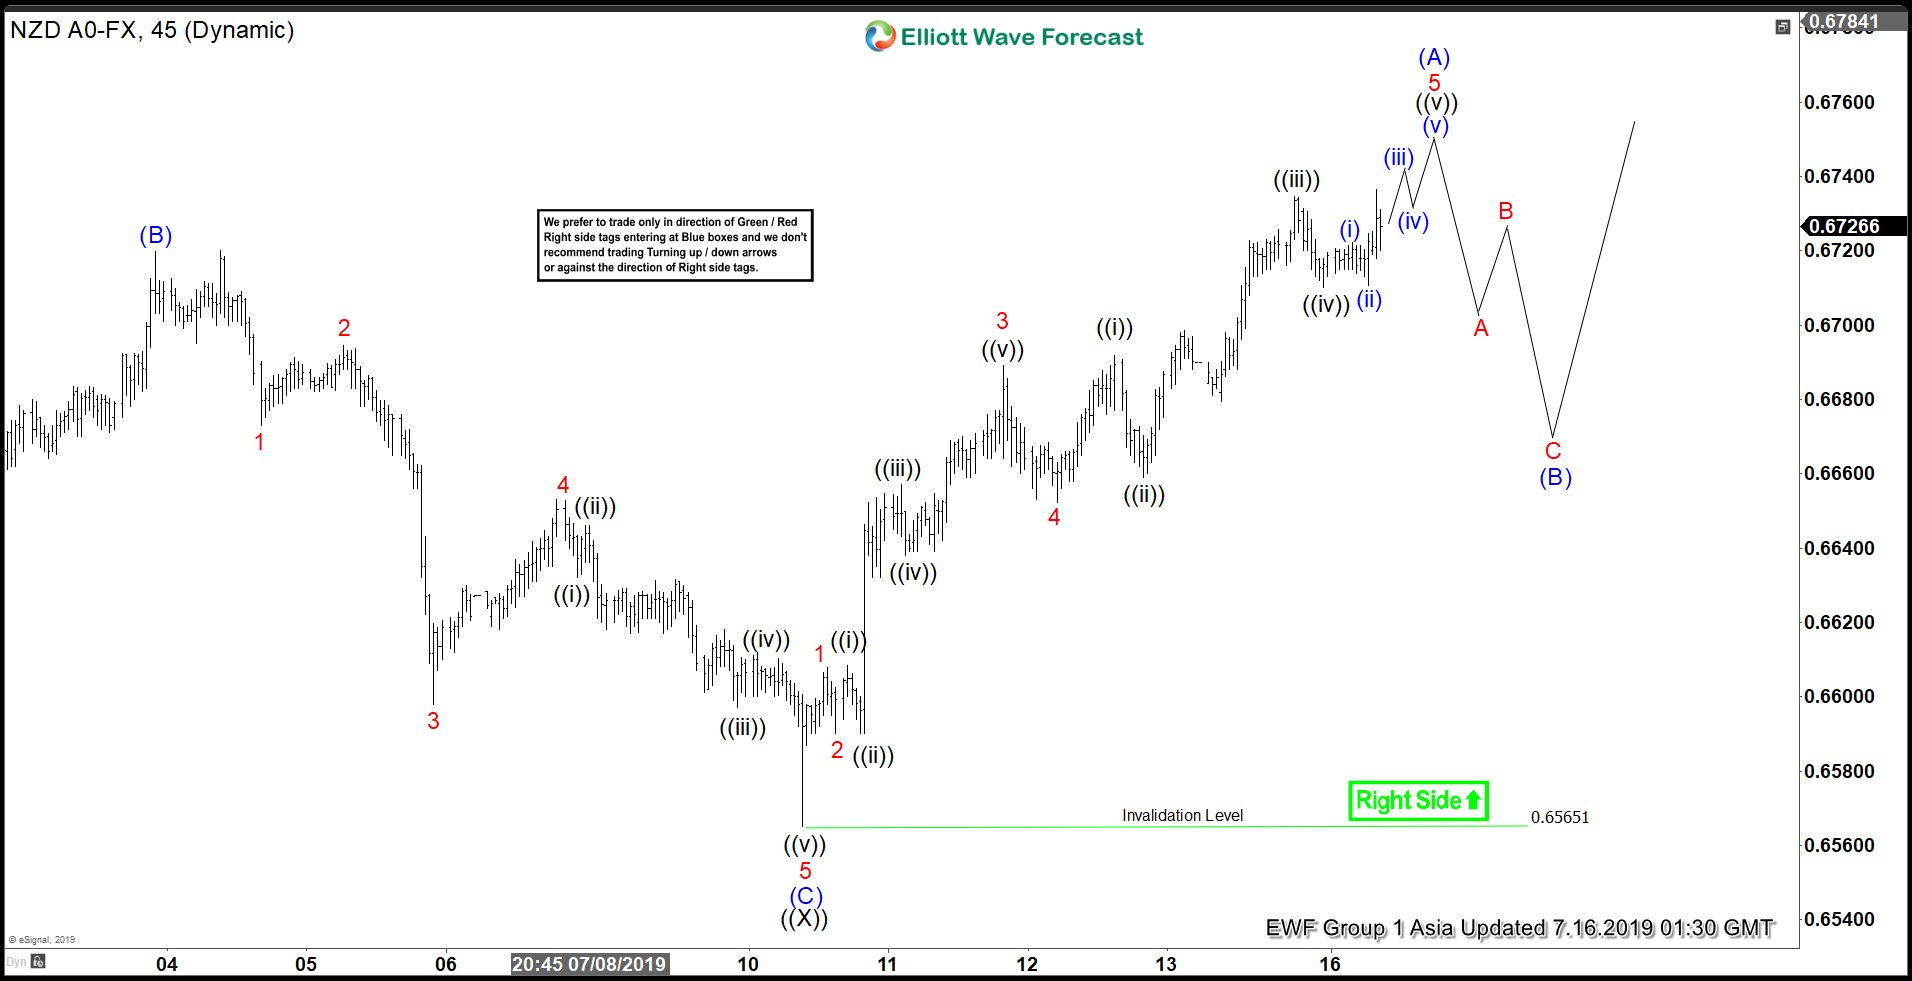 Elliott Wave View: NZDUSD Showing Incomplete Sequence